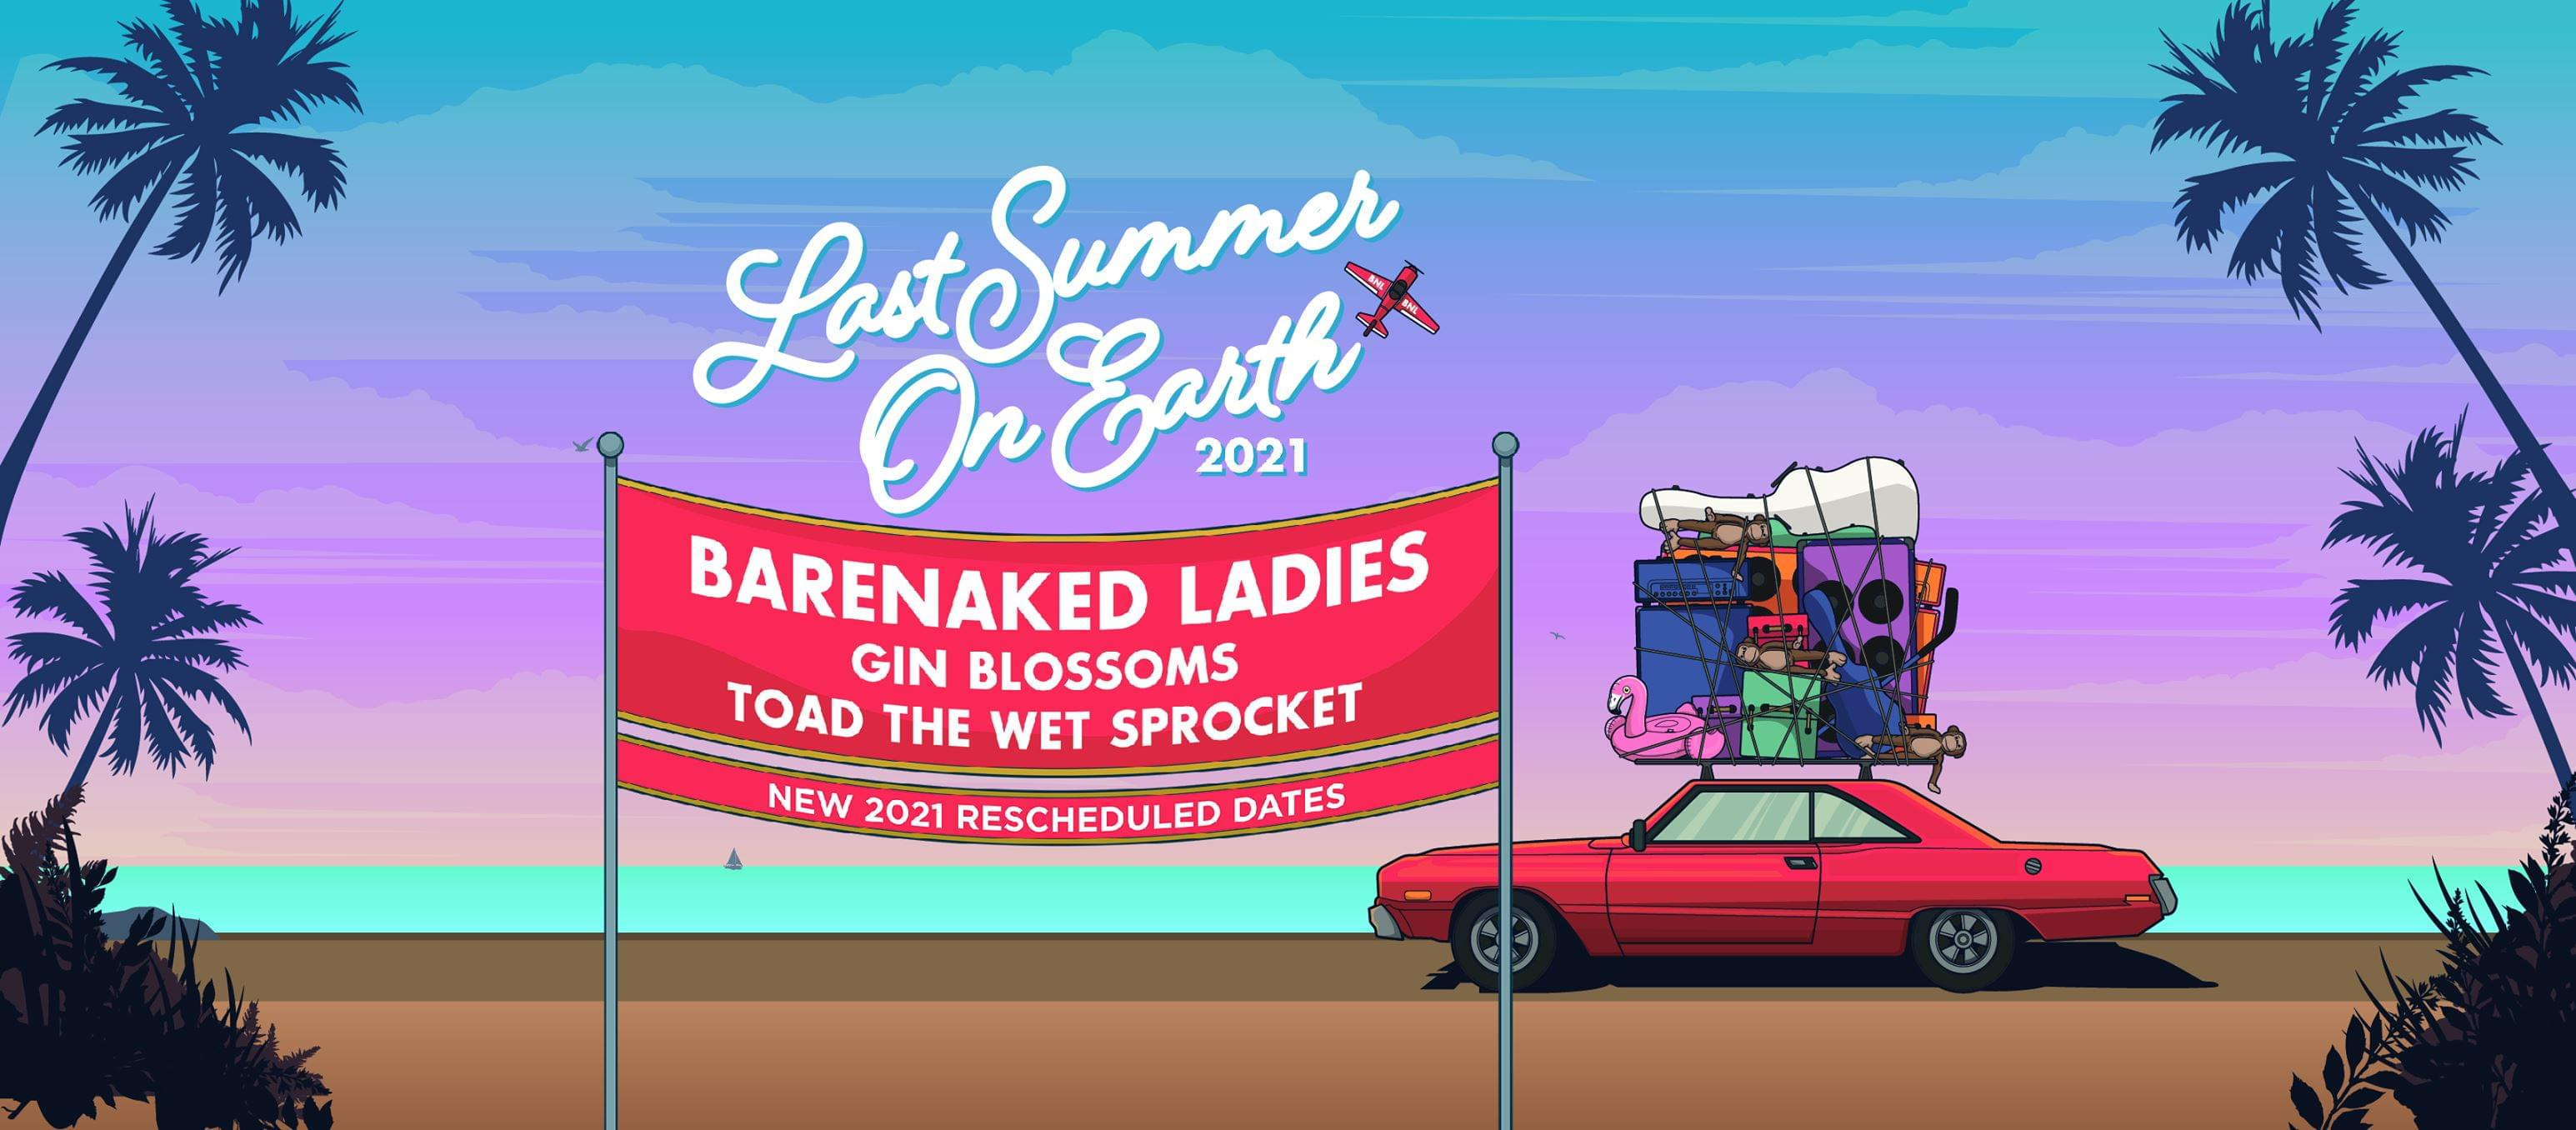 July 2, 2021 – Barenaked Ladies, Gin Blossoms & Toad the Wet Sprocket NEW DATE